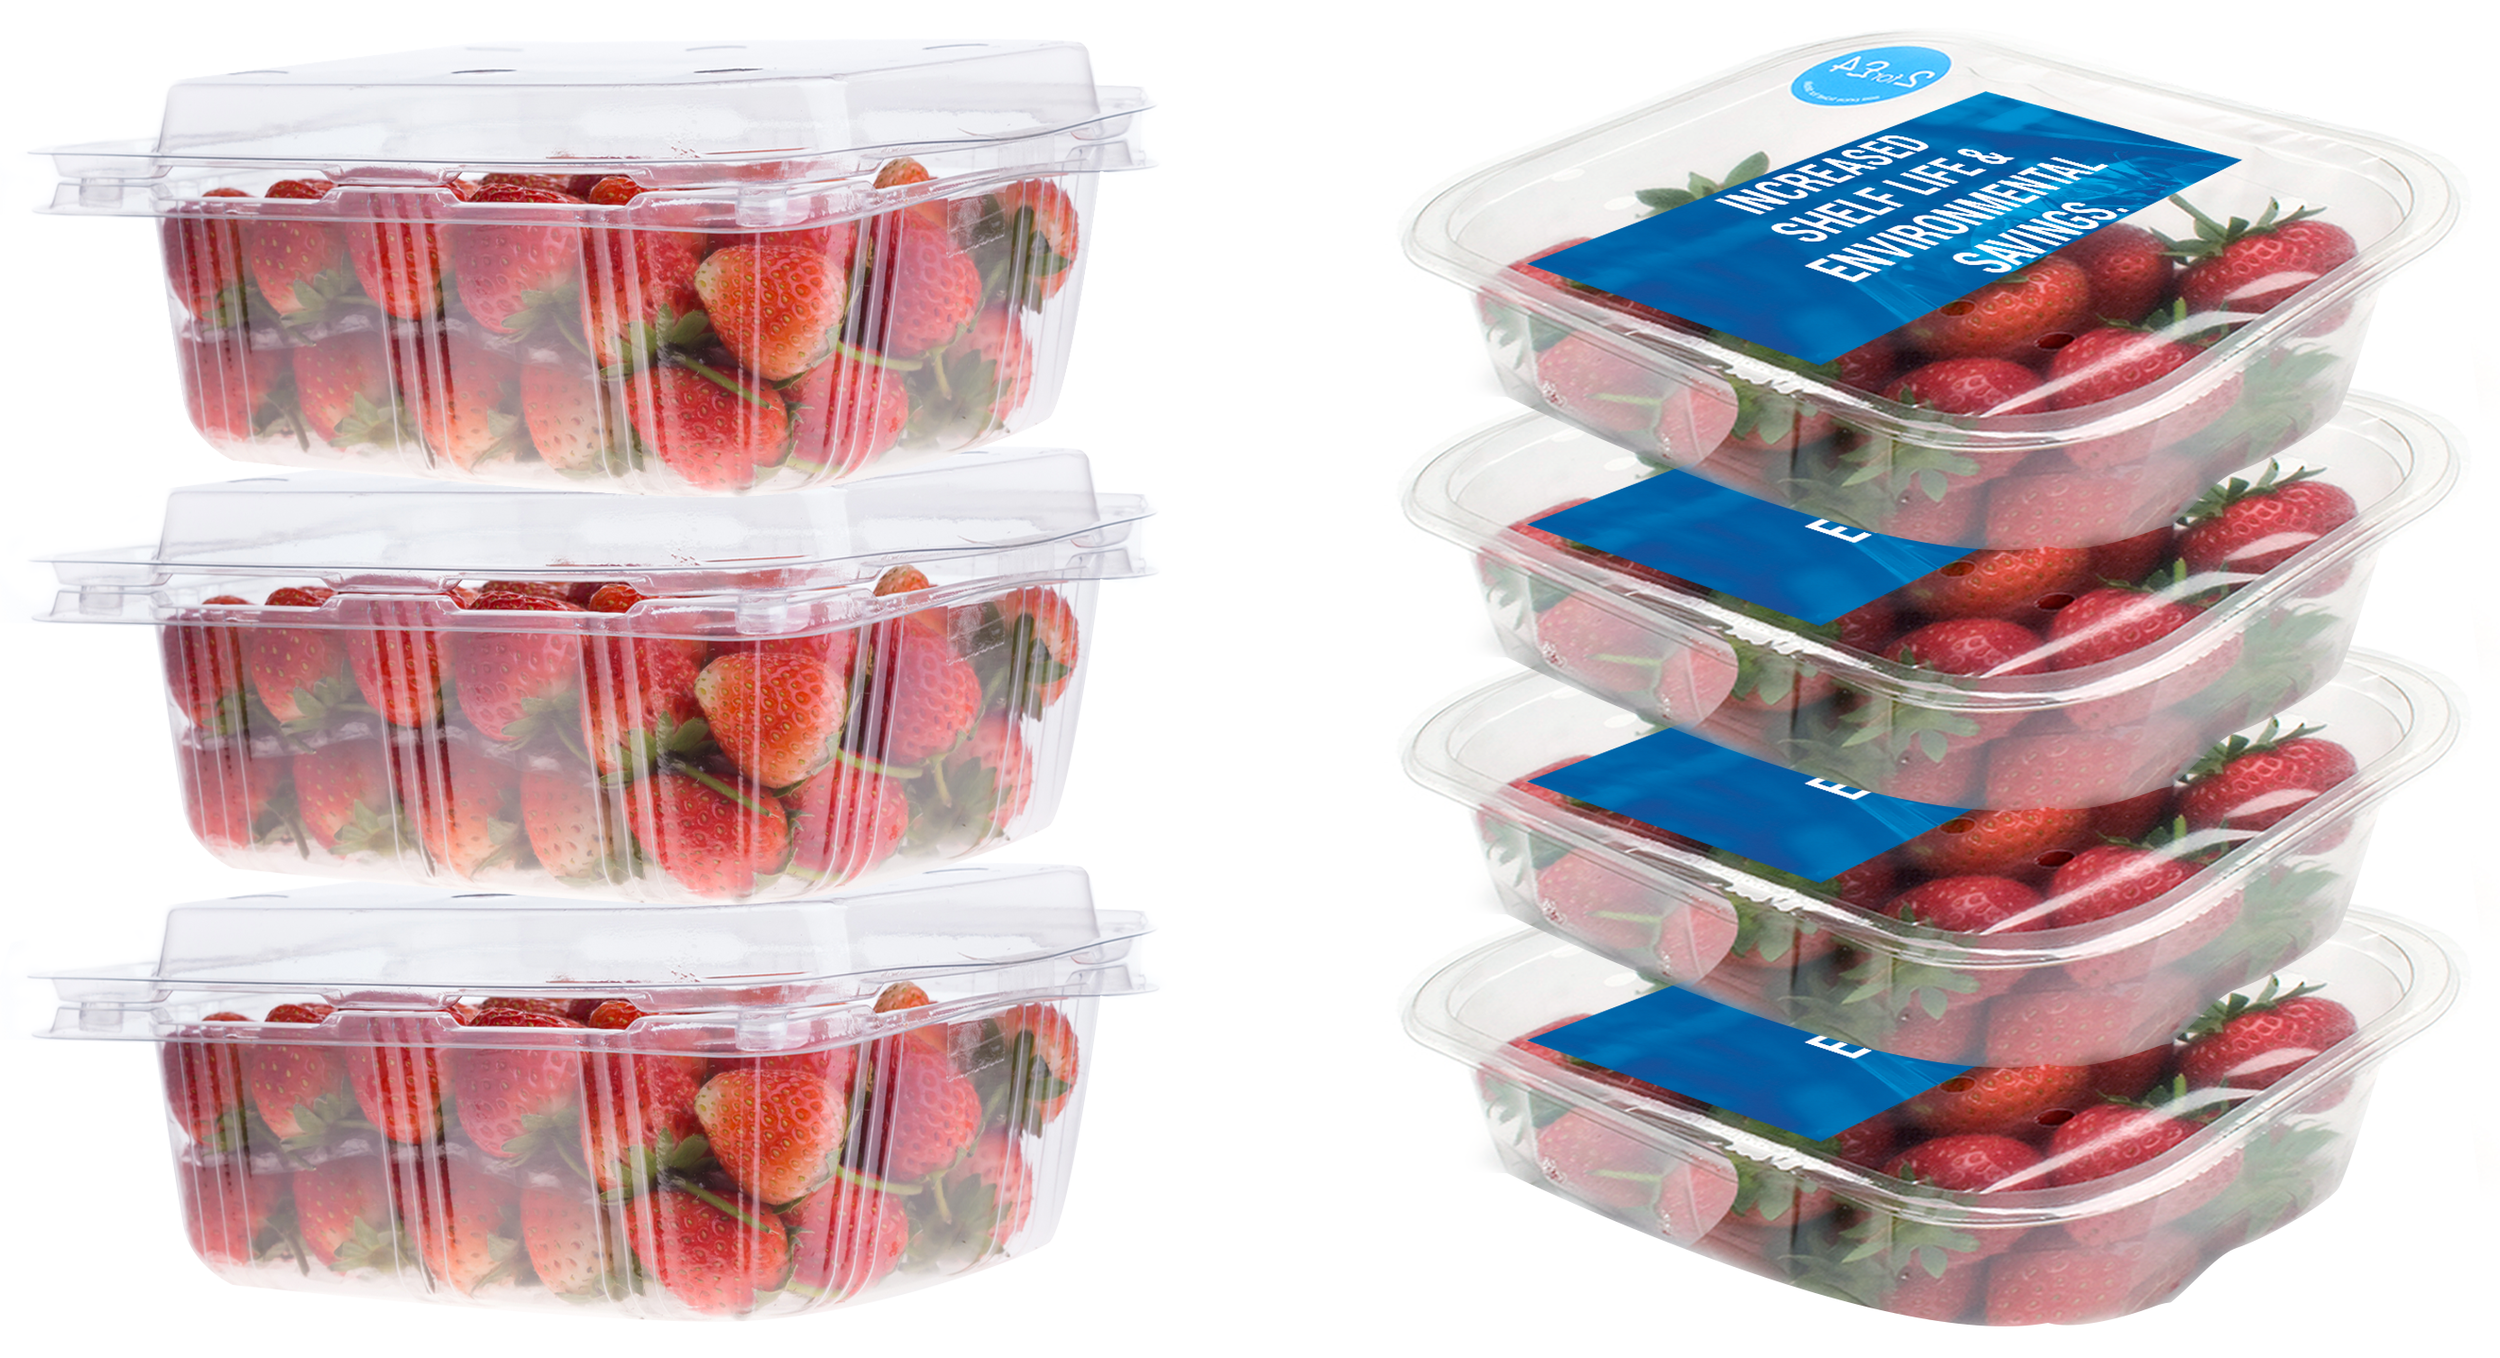 Strawberries packaged in clam shells vs. Strawberries packaged in top seal packaging